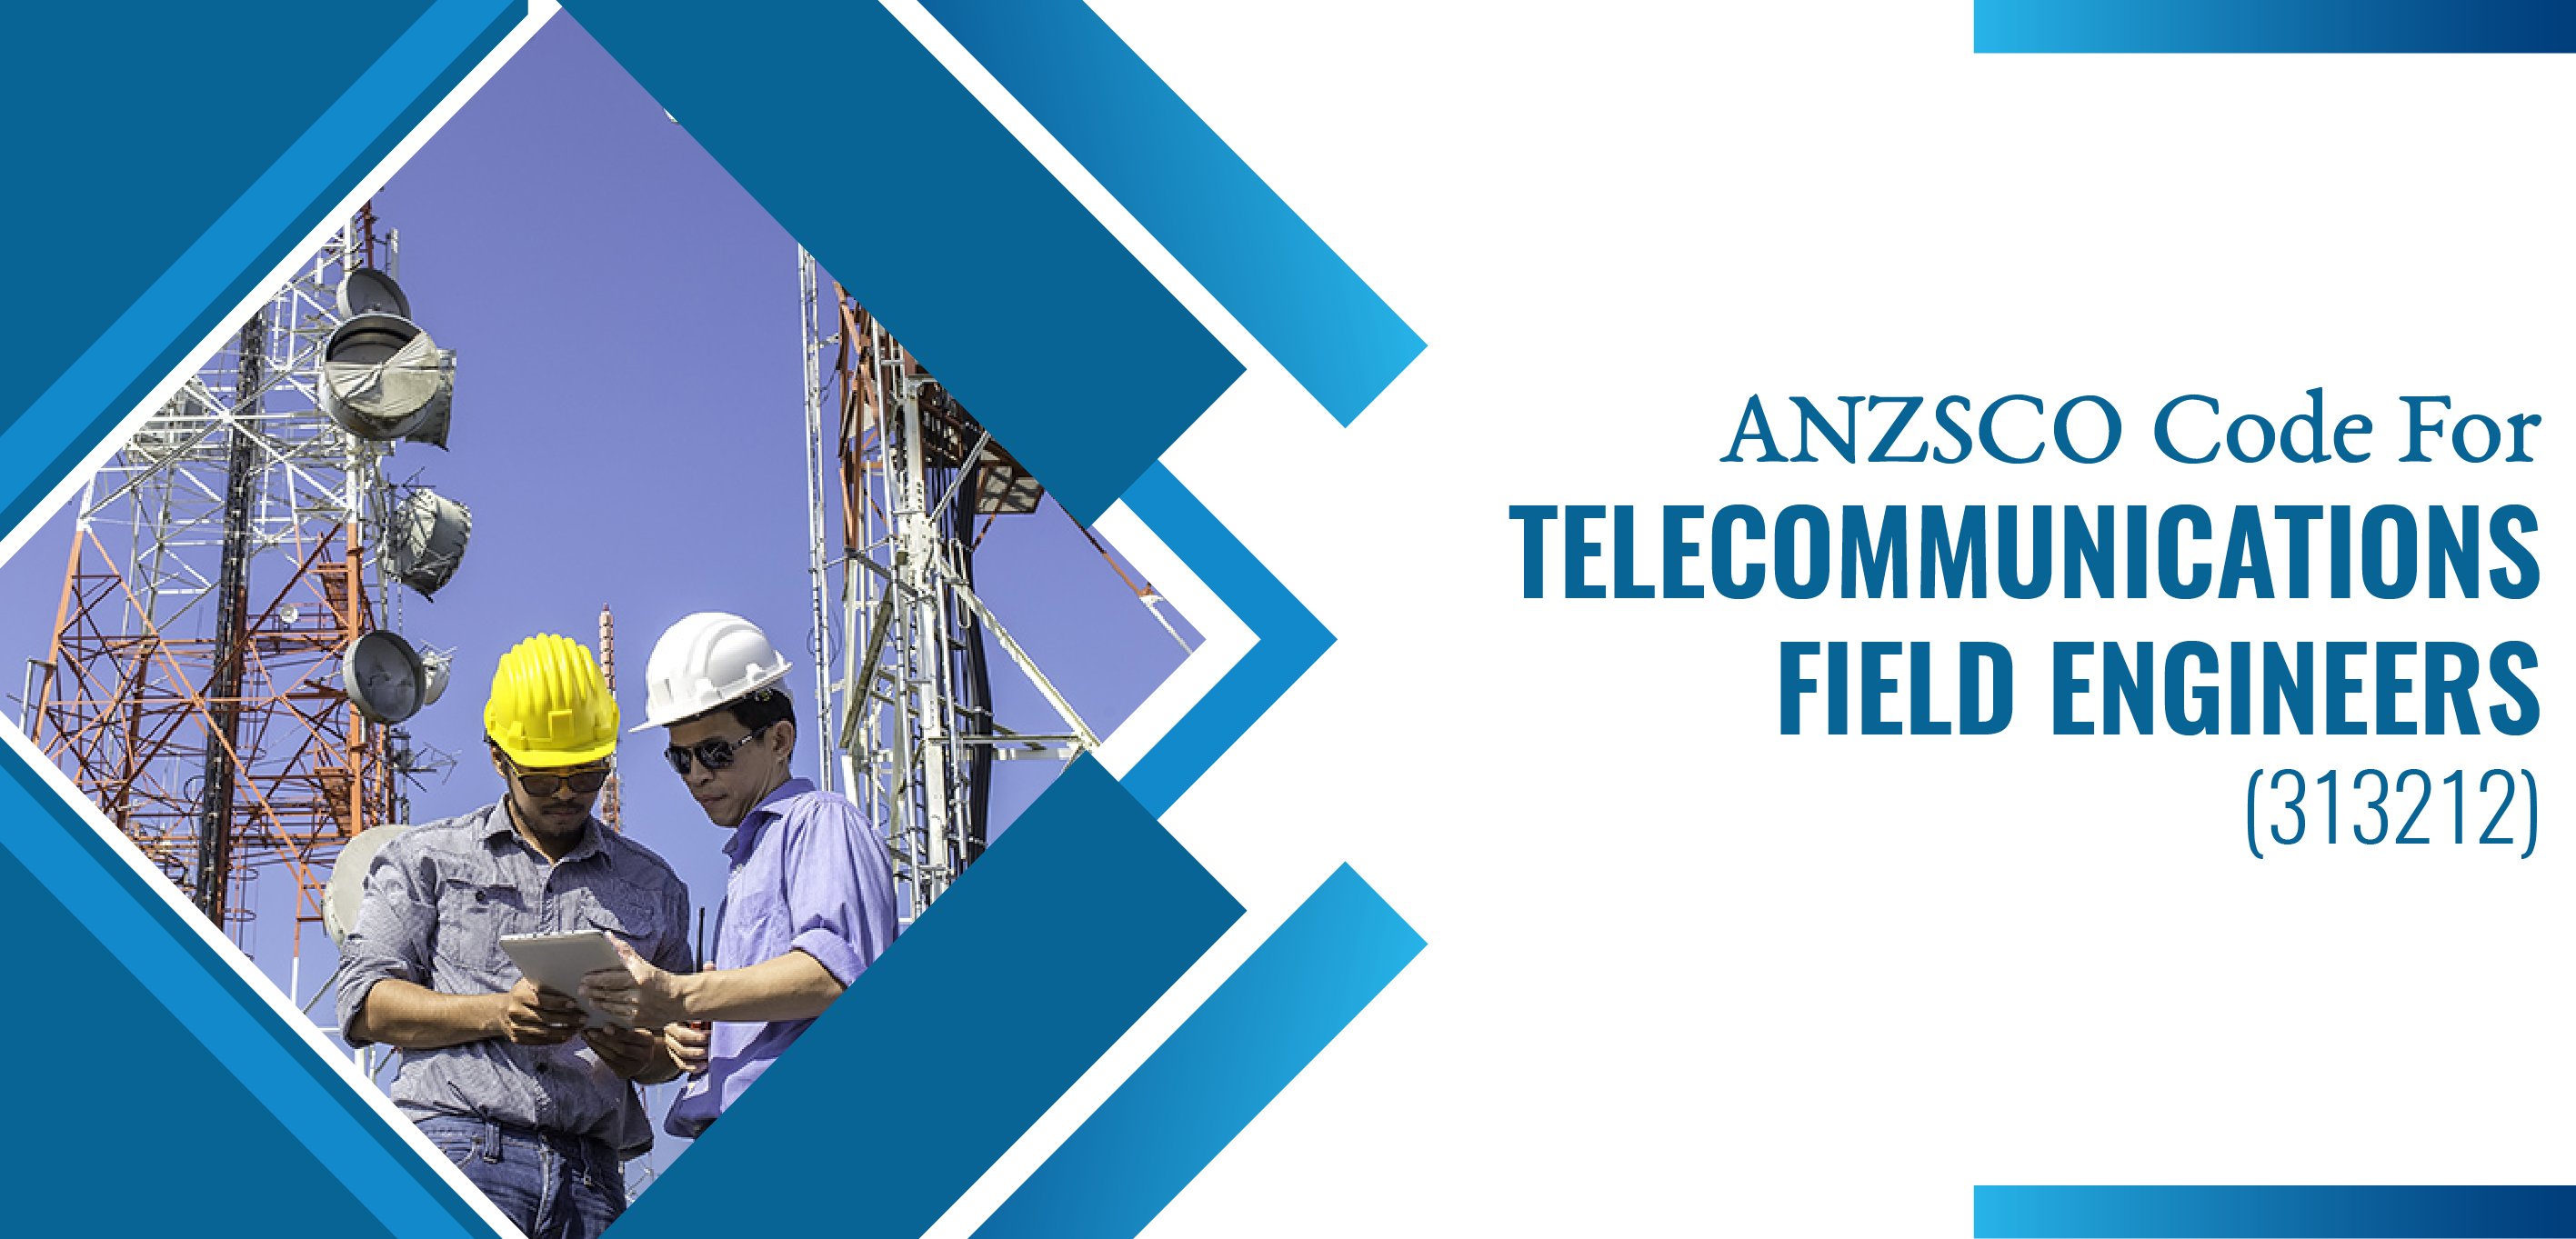 Telecommunications Field Engineers ANZSCO